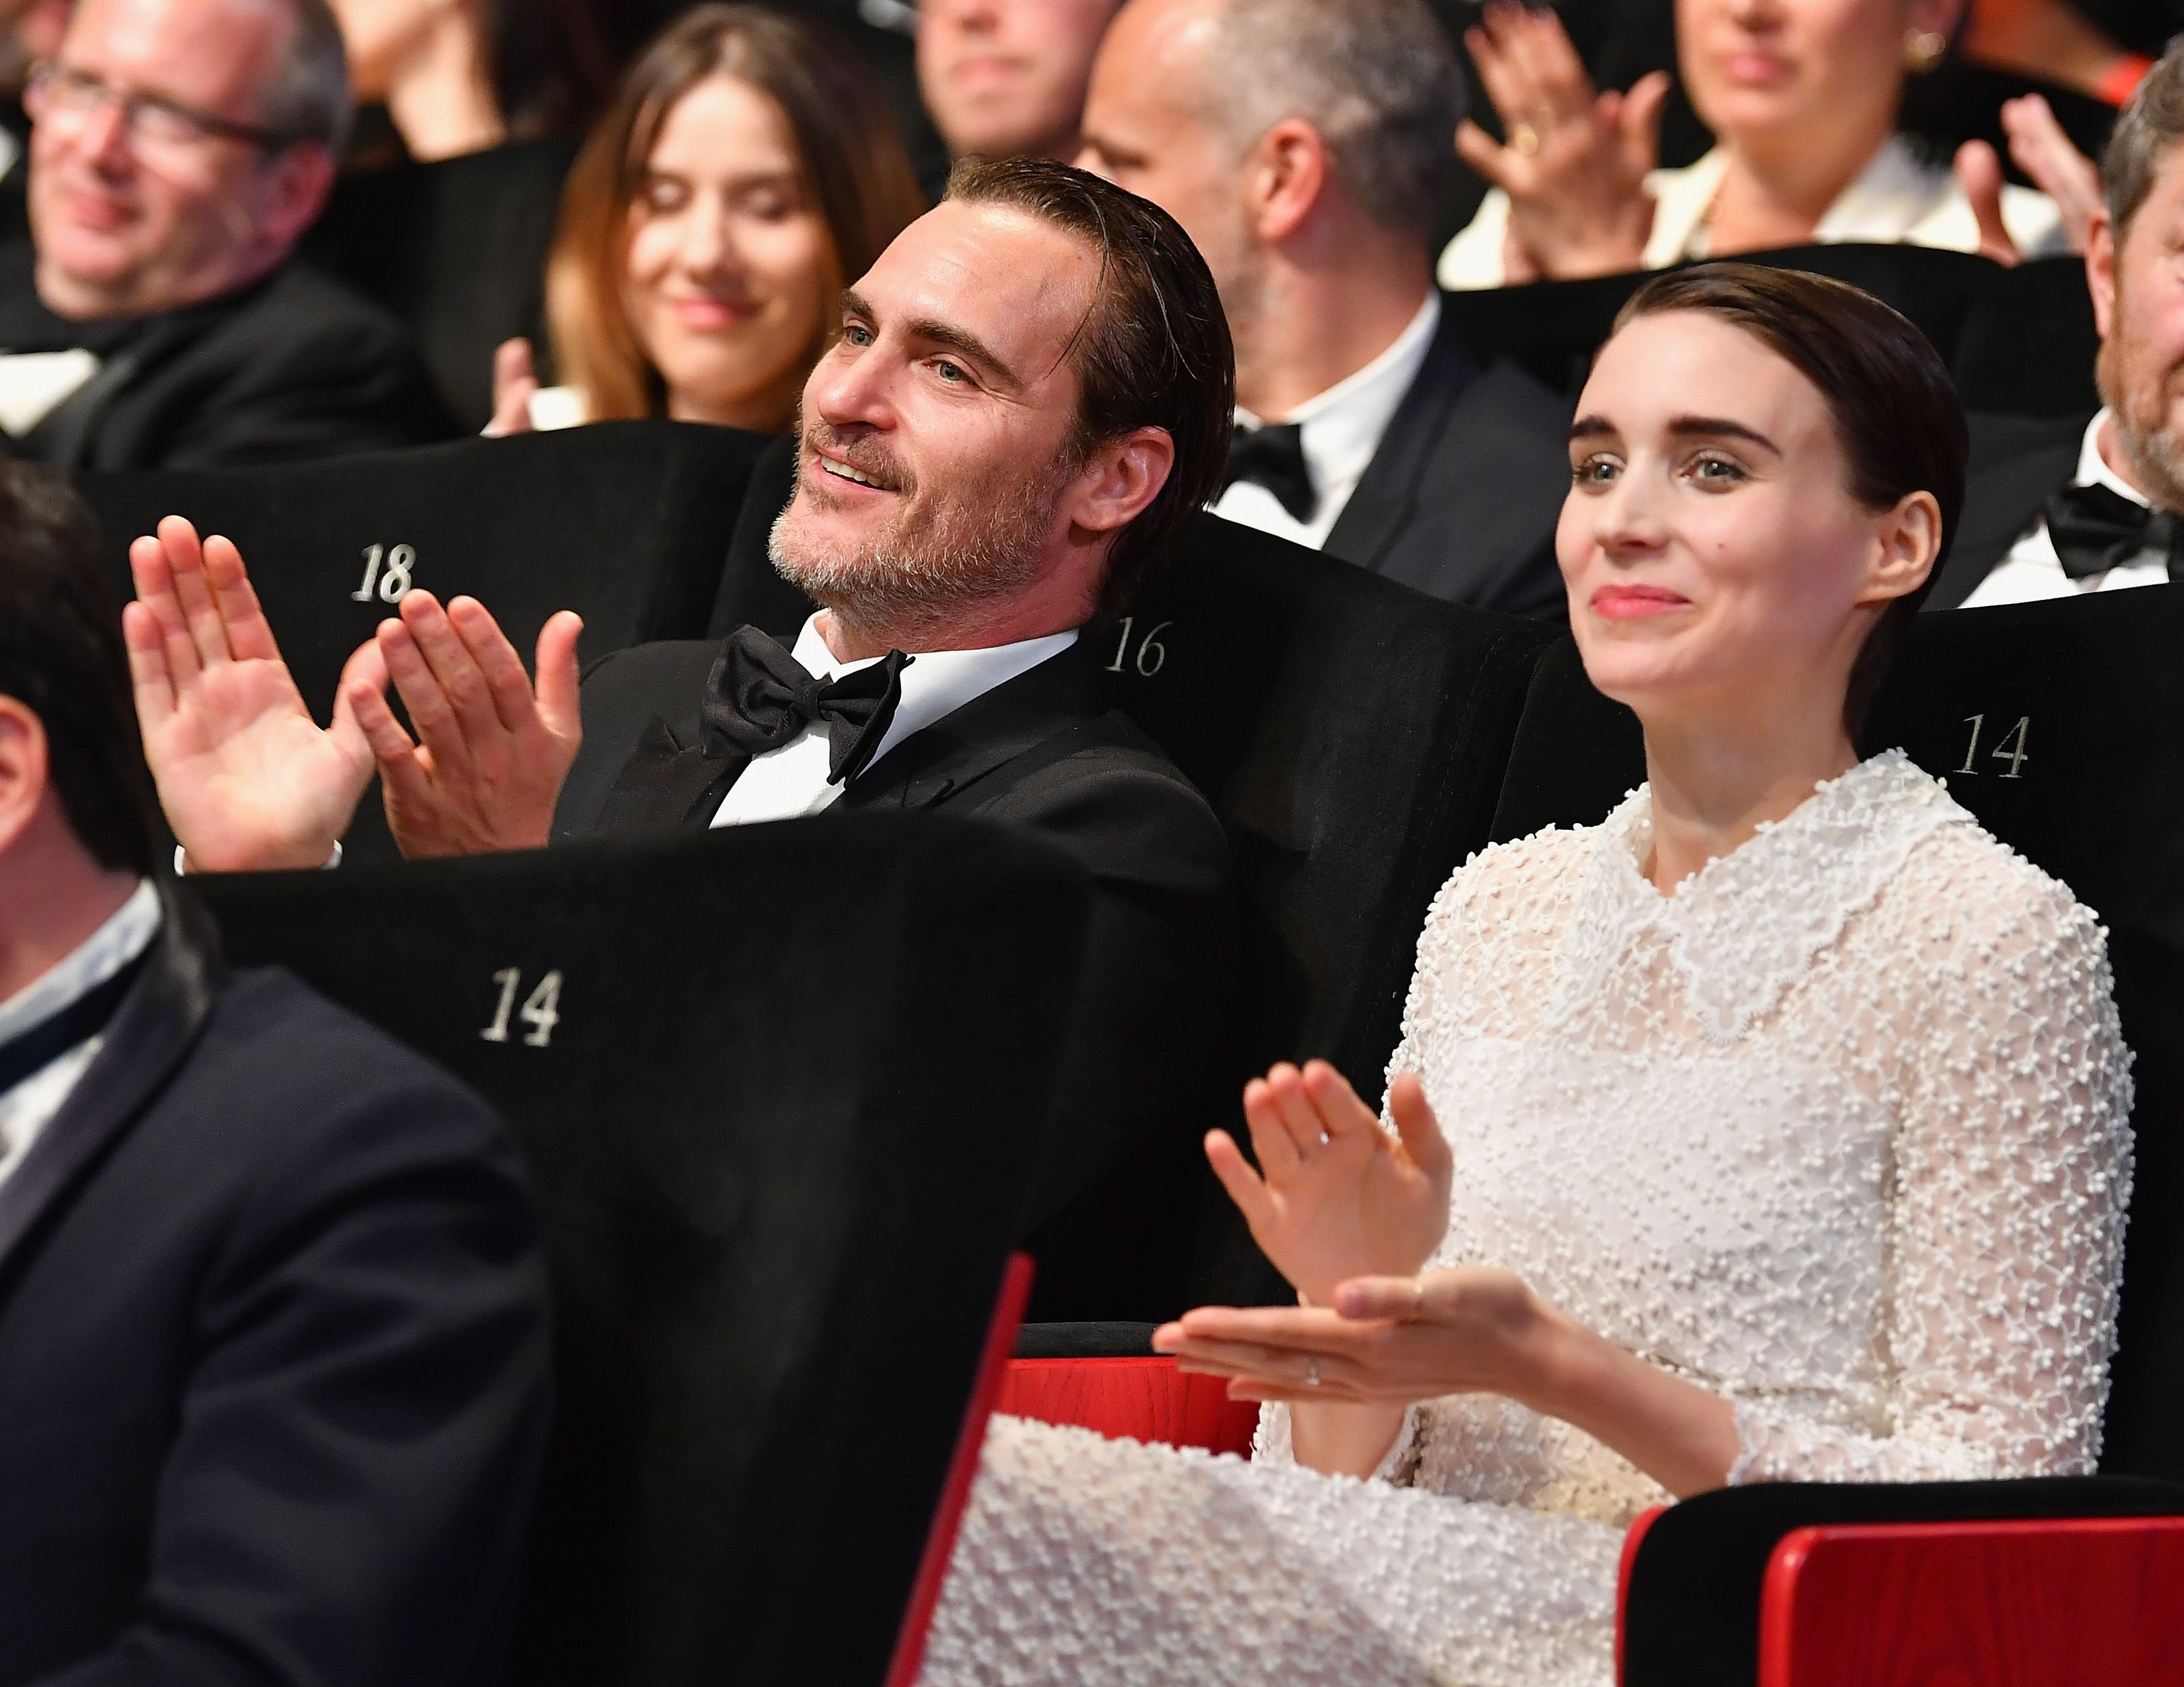 Joaquin Phoenix and Rooney Mara at the Closing Ceremony of the 70th annual Cannes Film Festival at Palais des Festivals on May 28, 2017 in Cannes, France. | Photo: Getty Images